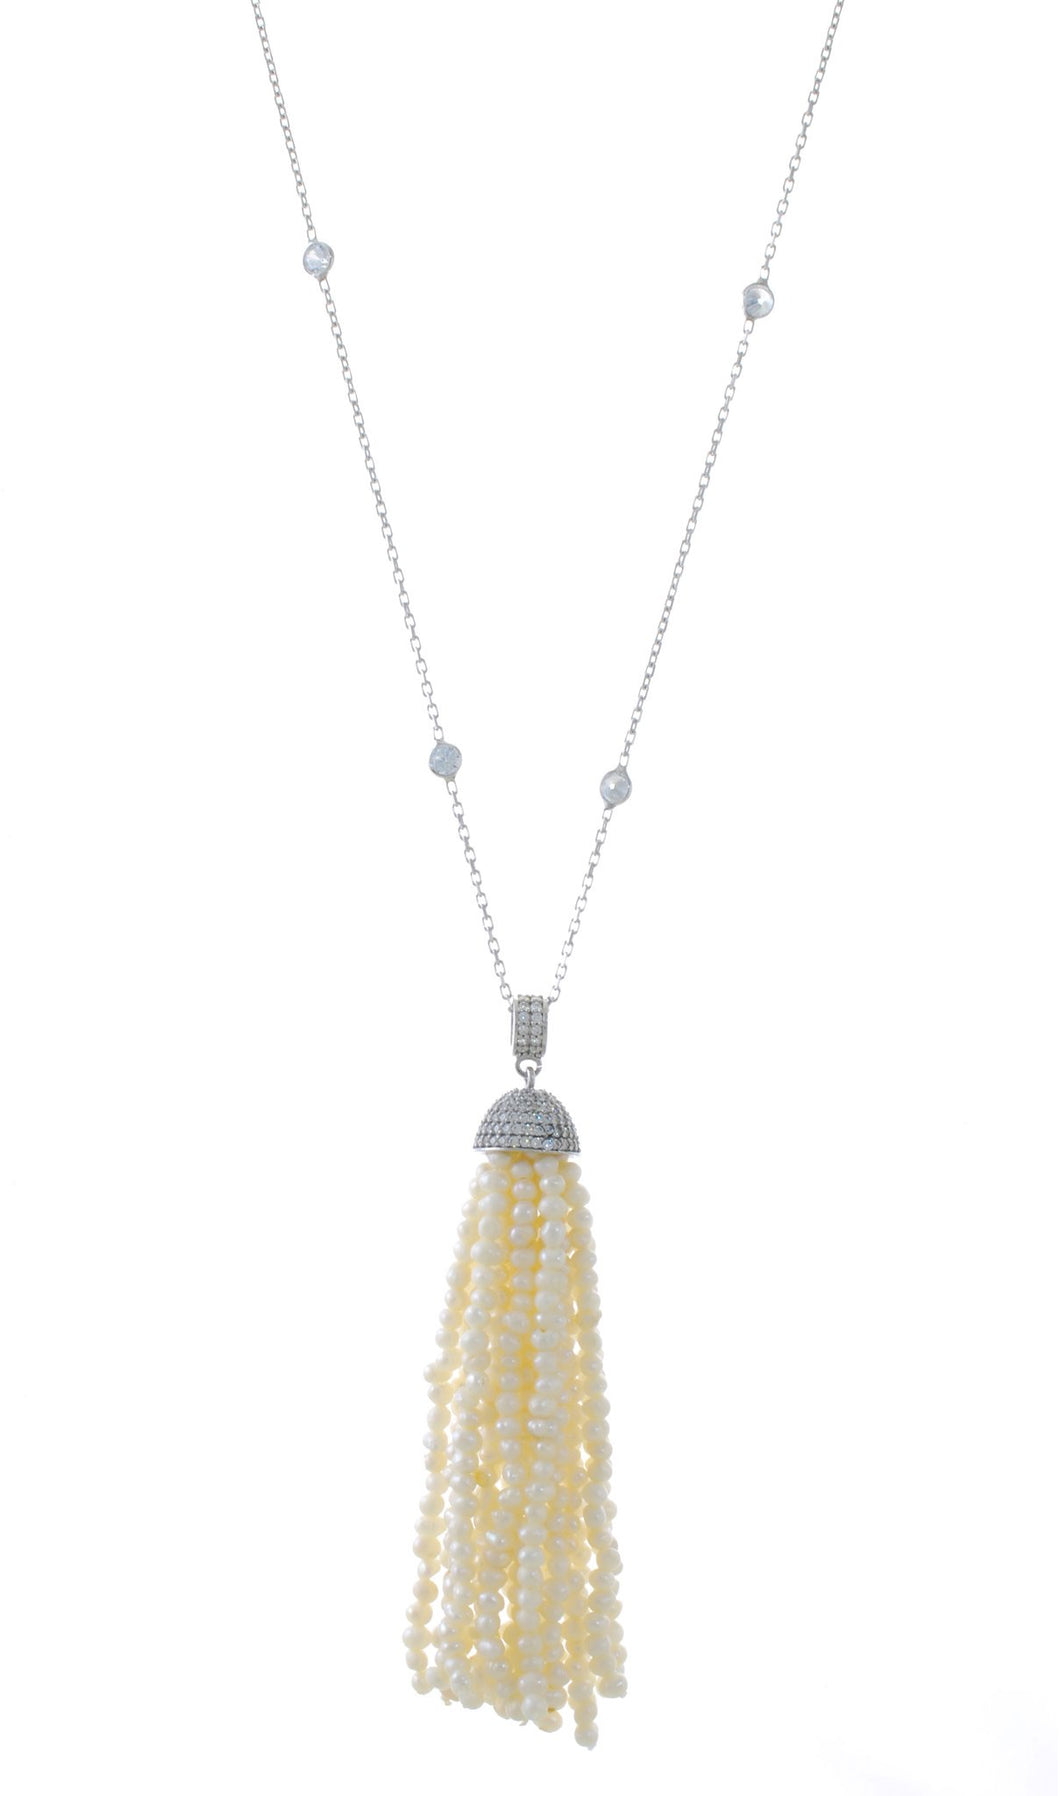 MEDIUM CUP TASSEL PEARL LONG NECKLACE